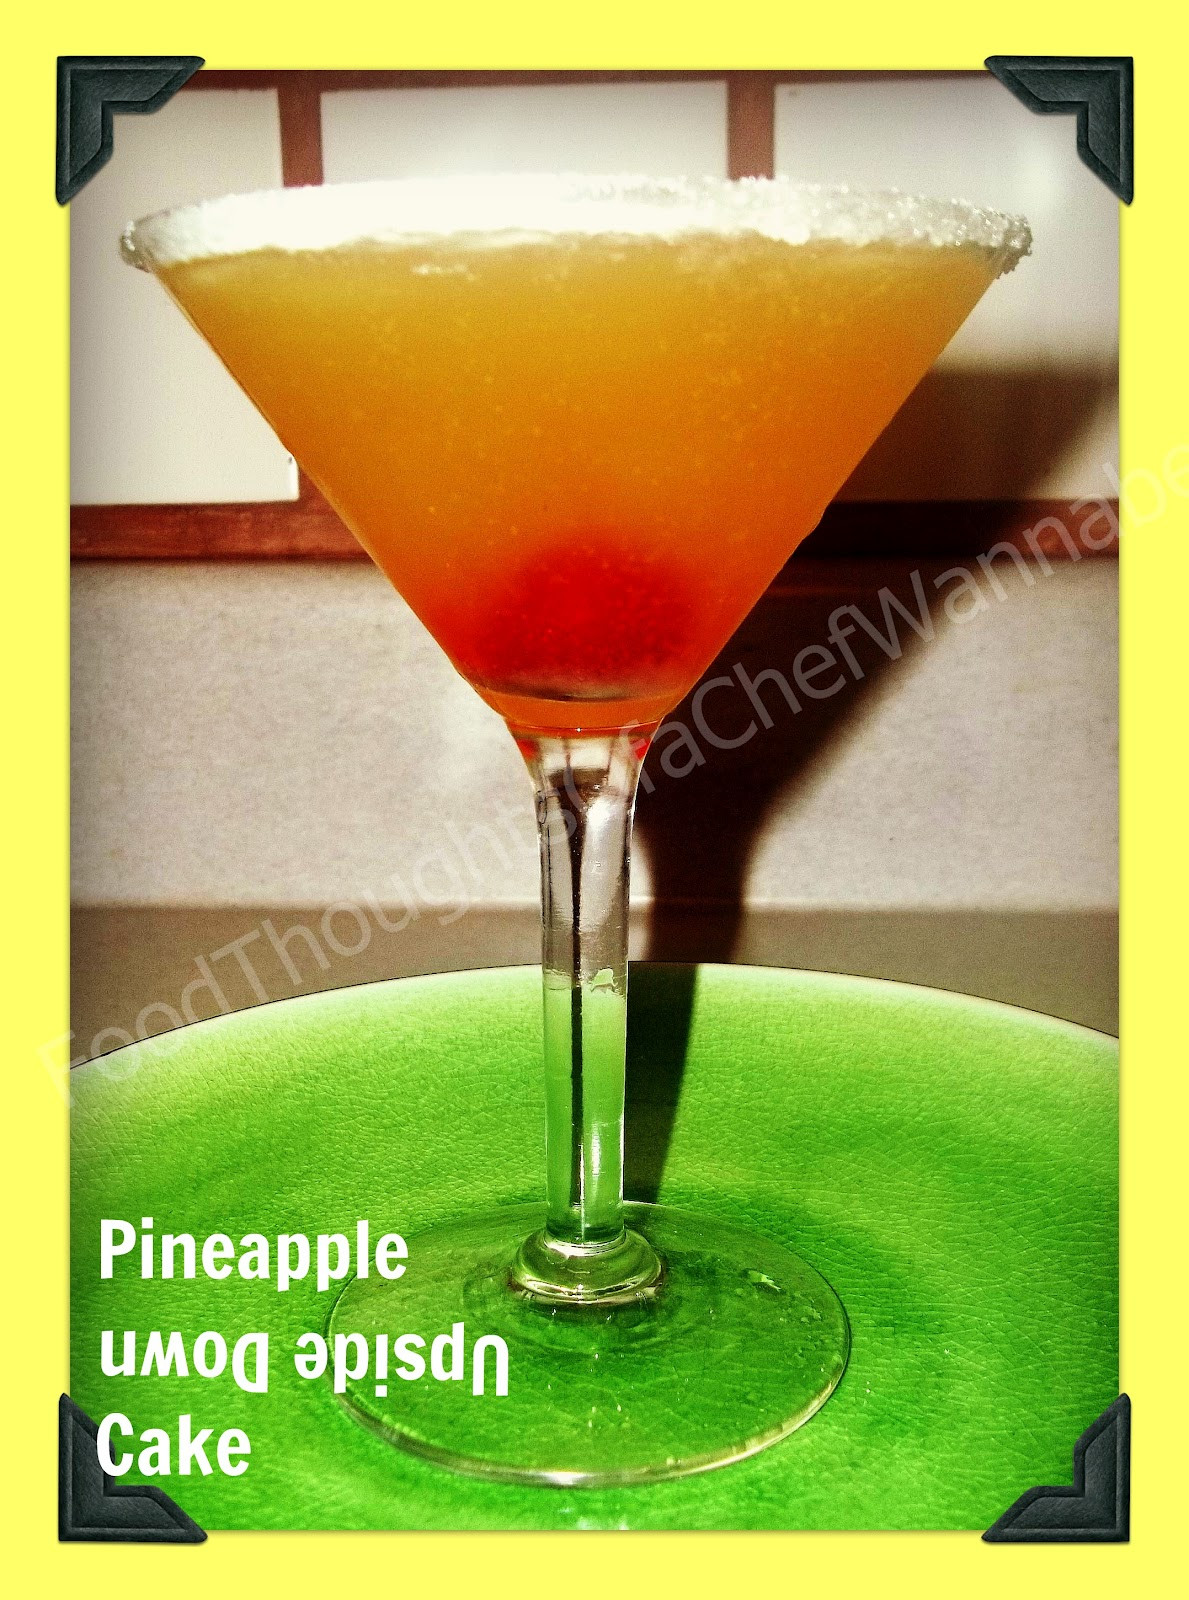 Pineapple Upside Down Cake Drink  FoodThoughts aChefWannabe Pineapple Upside Down Cake